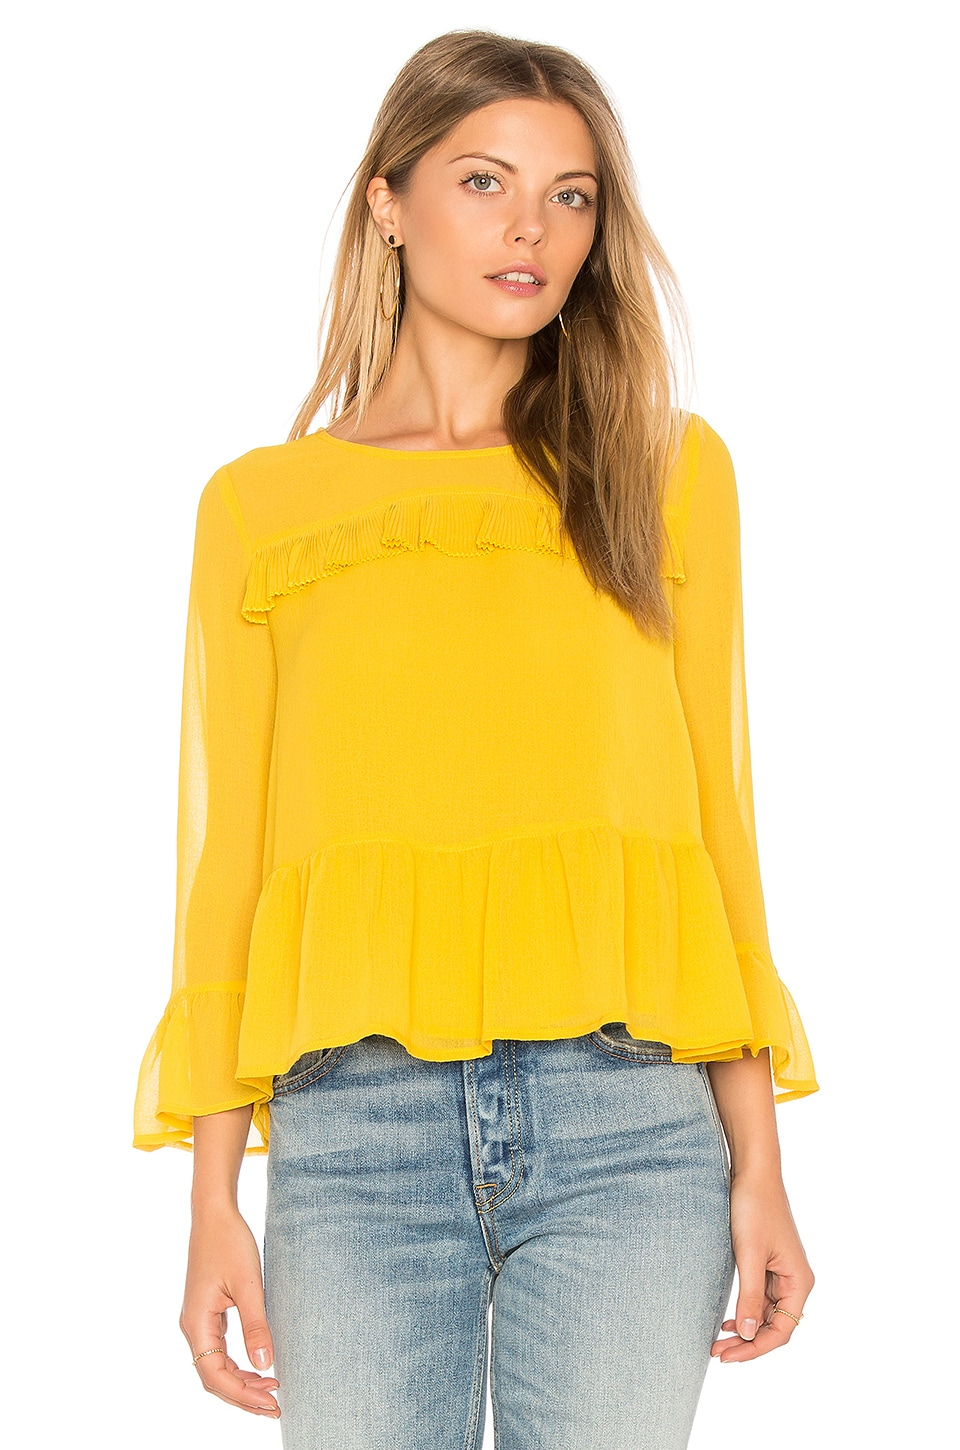 cupcakes and cashmere Katlyn Top in Safron Yellow